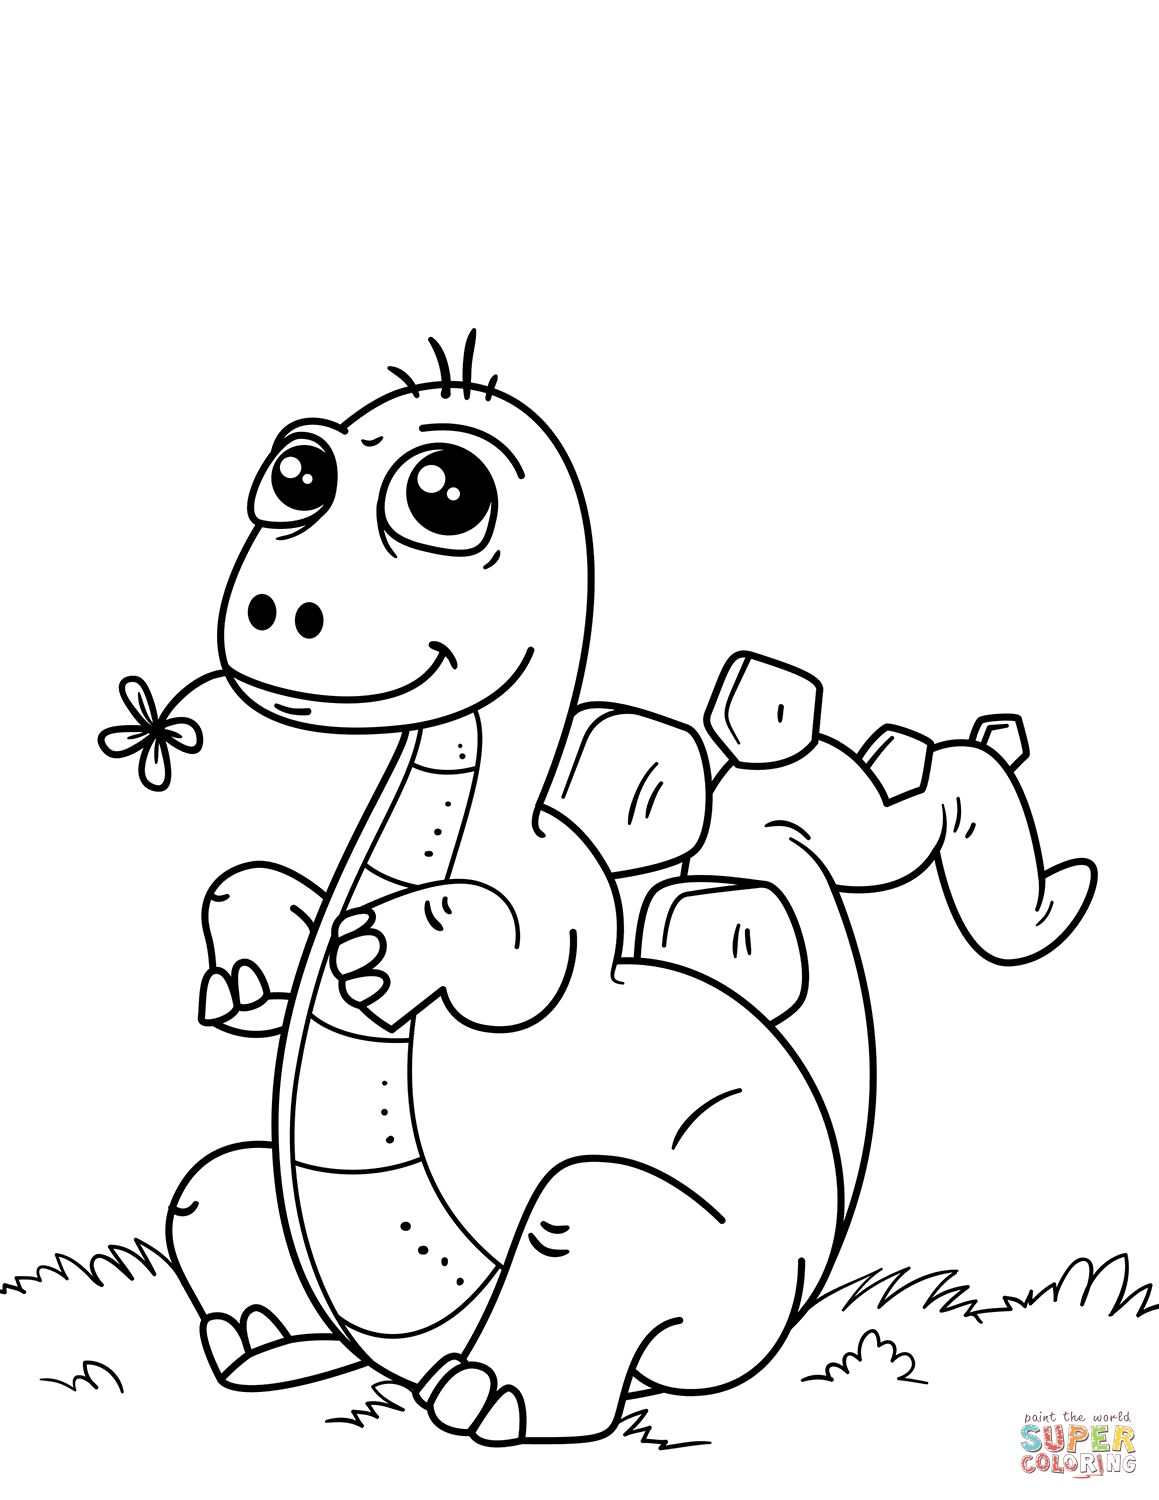 dinosaur pictures for kids coloring pages images dinosaurs pictures and facts page pictures for dinosaur kids